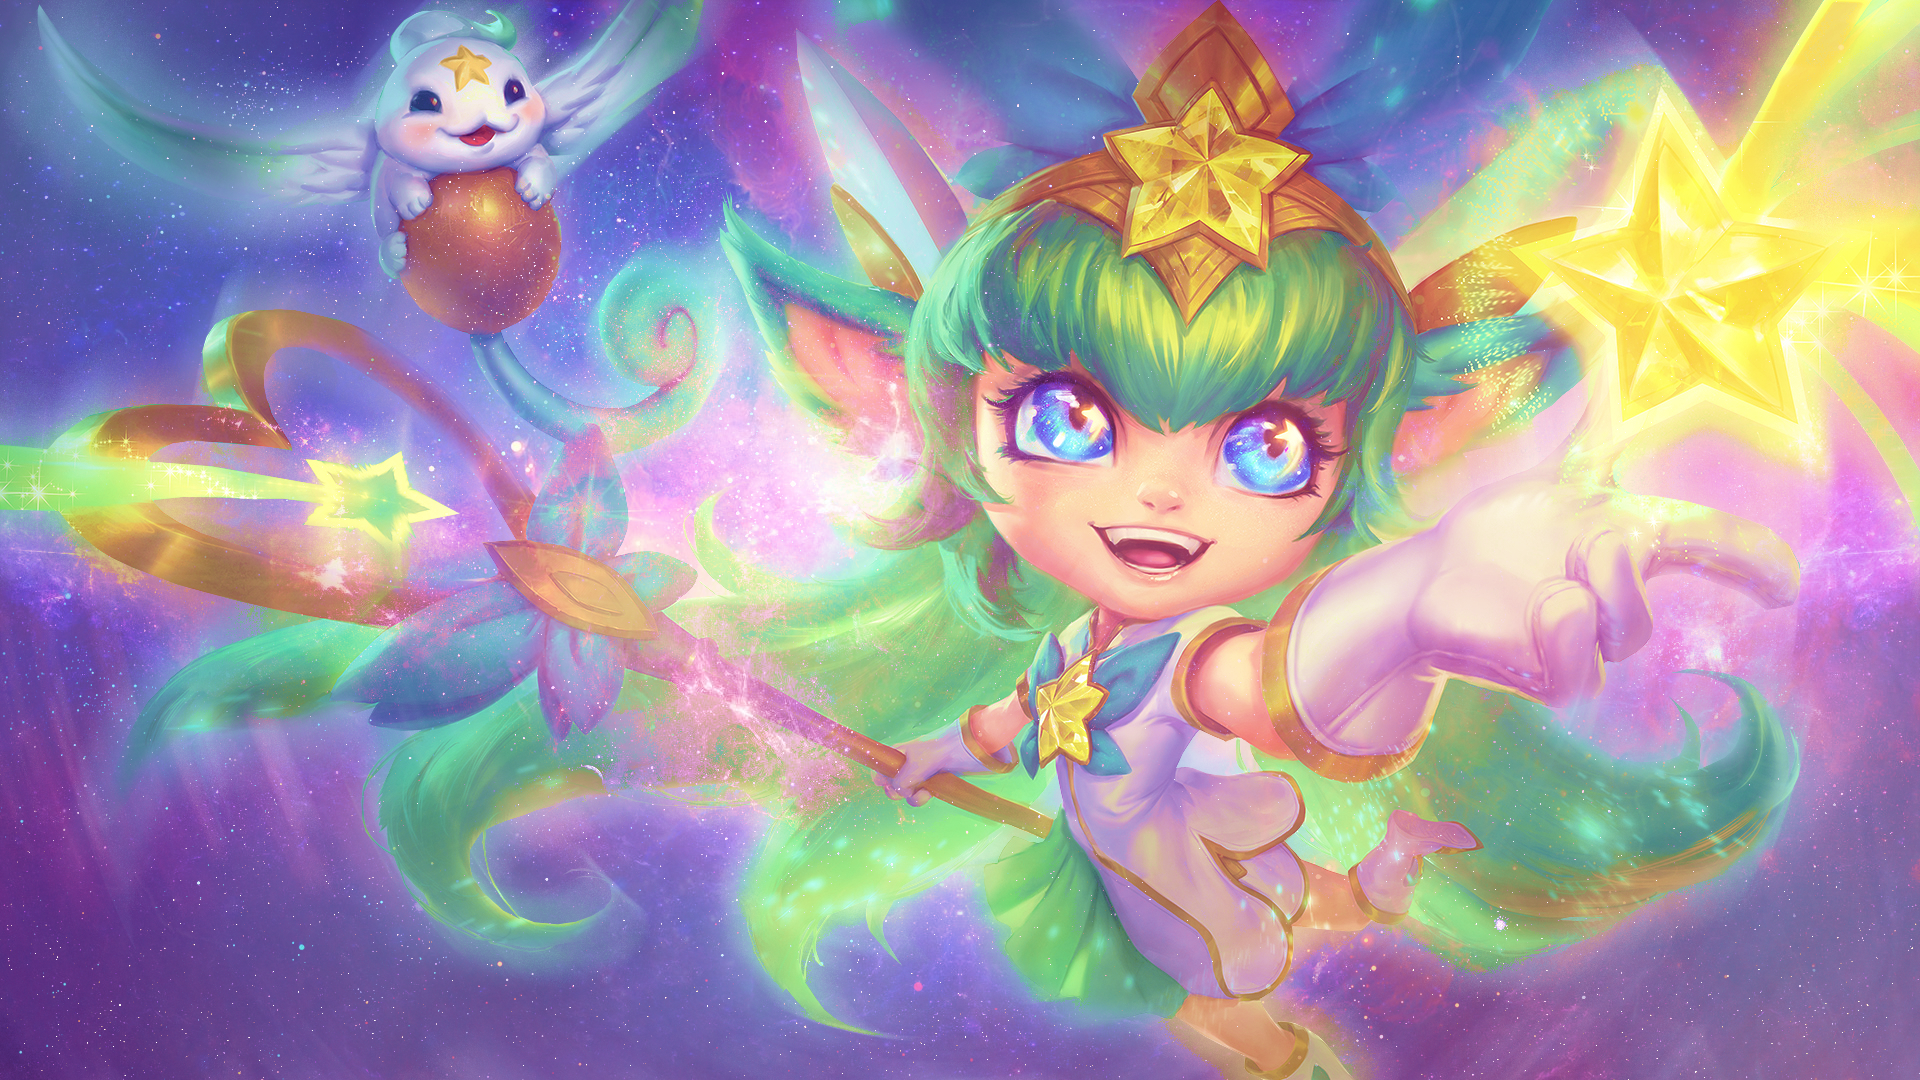 Lol Star Guardian Lulu Wallpaper By Psychomilla On Deviantart